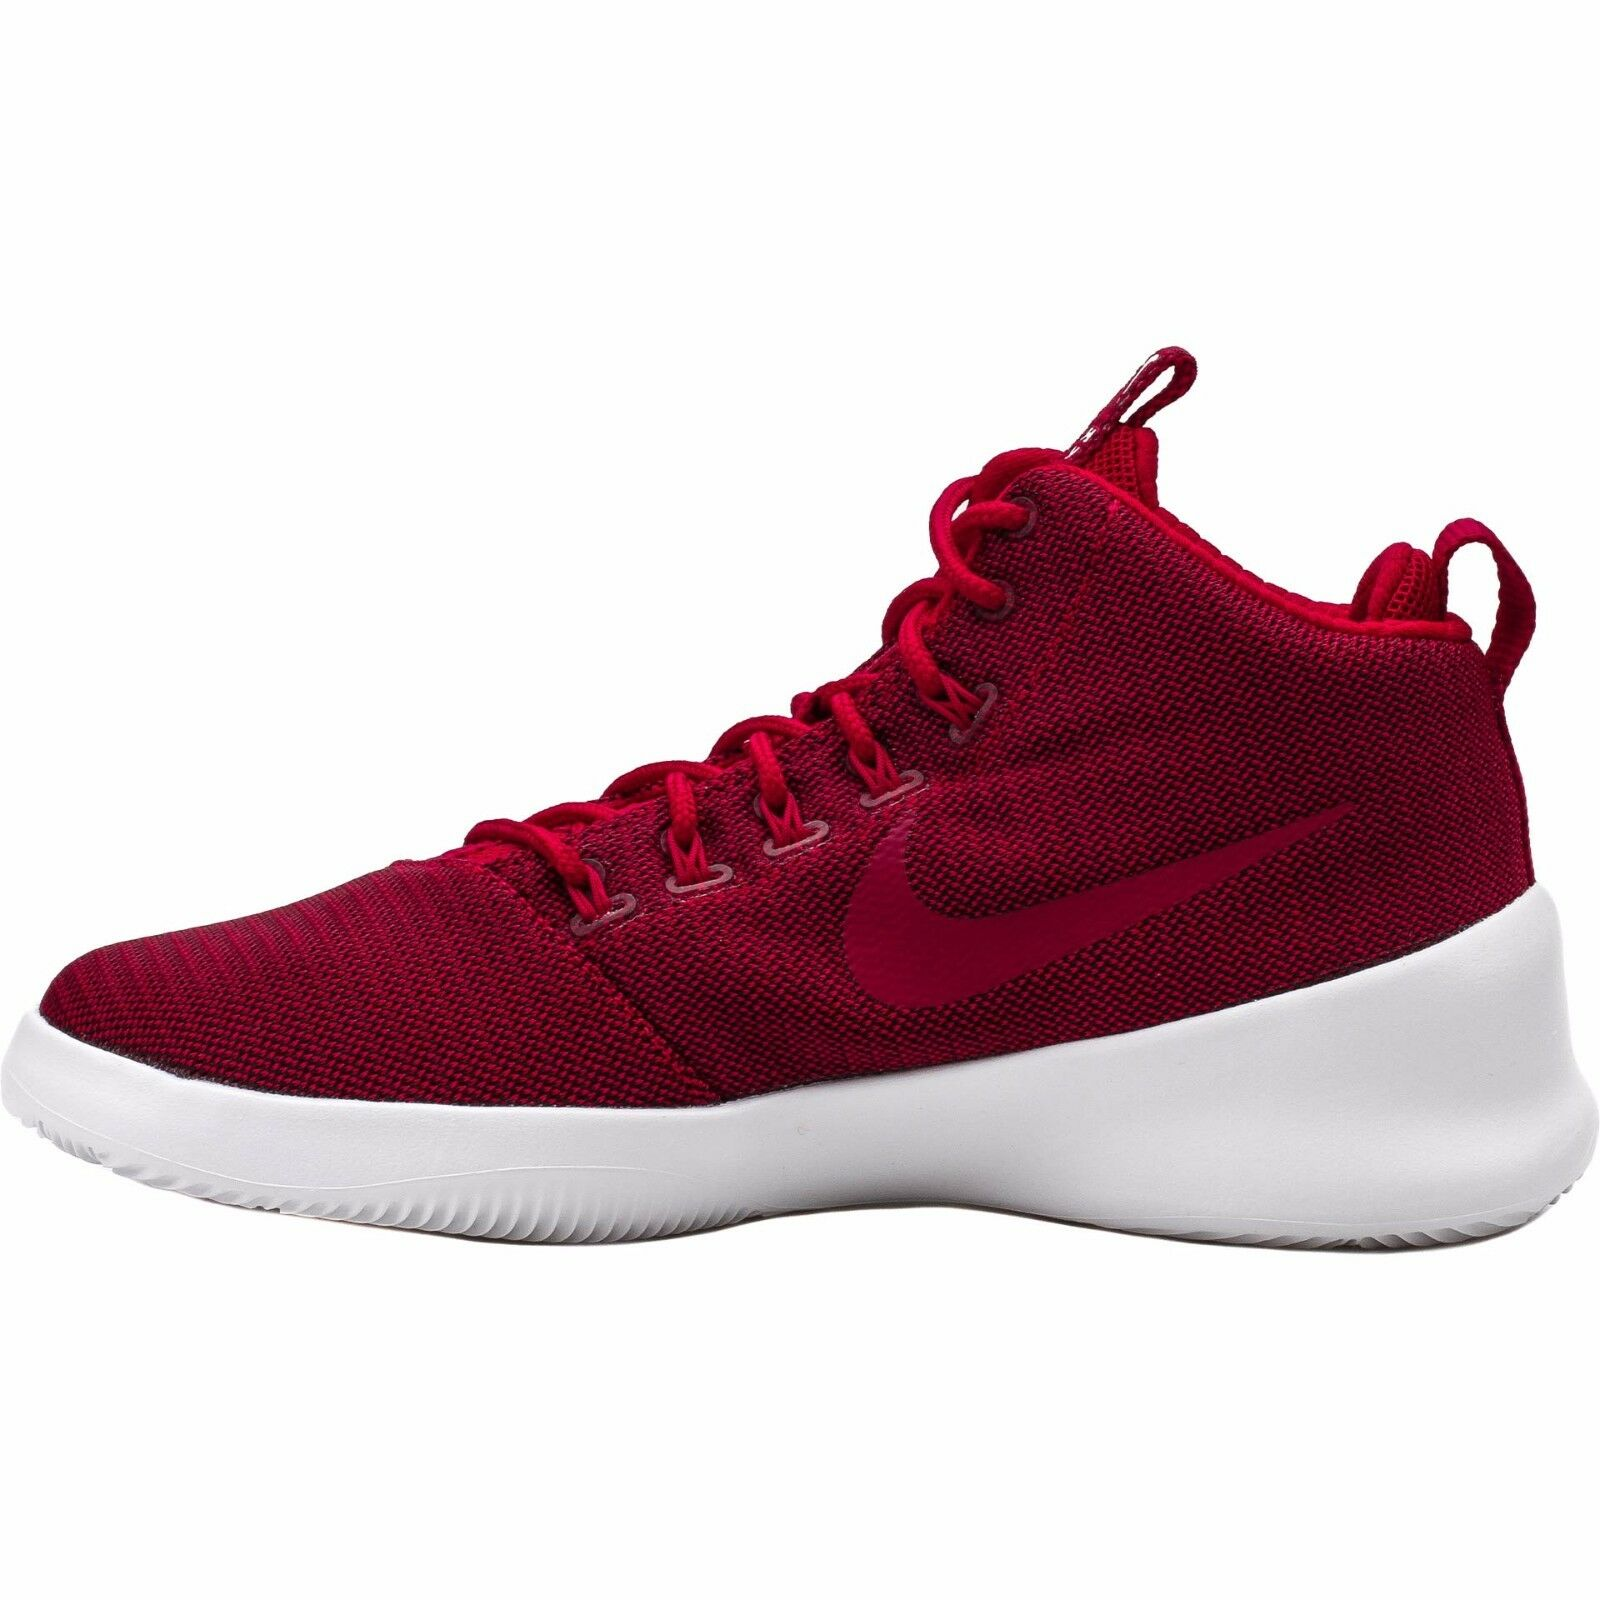 pretty nice 5f3cd d192c 759996-601 Men s Nike Hyperfr3sh Training Training Training Shoes!! GYM RED  SUMMIT